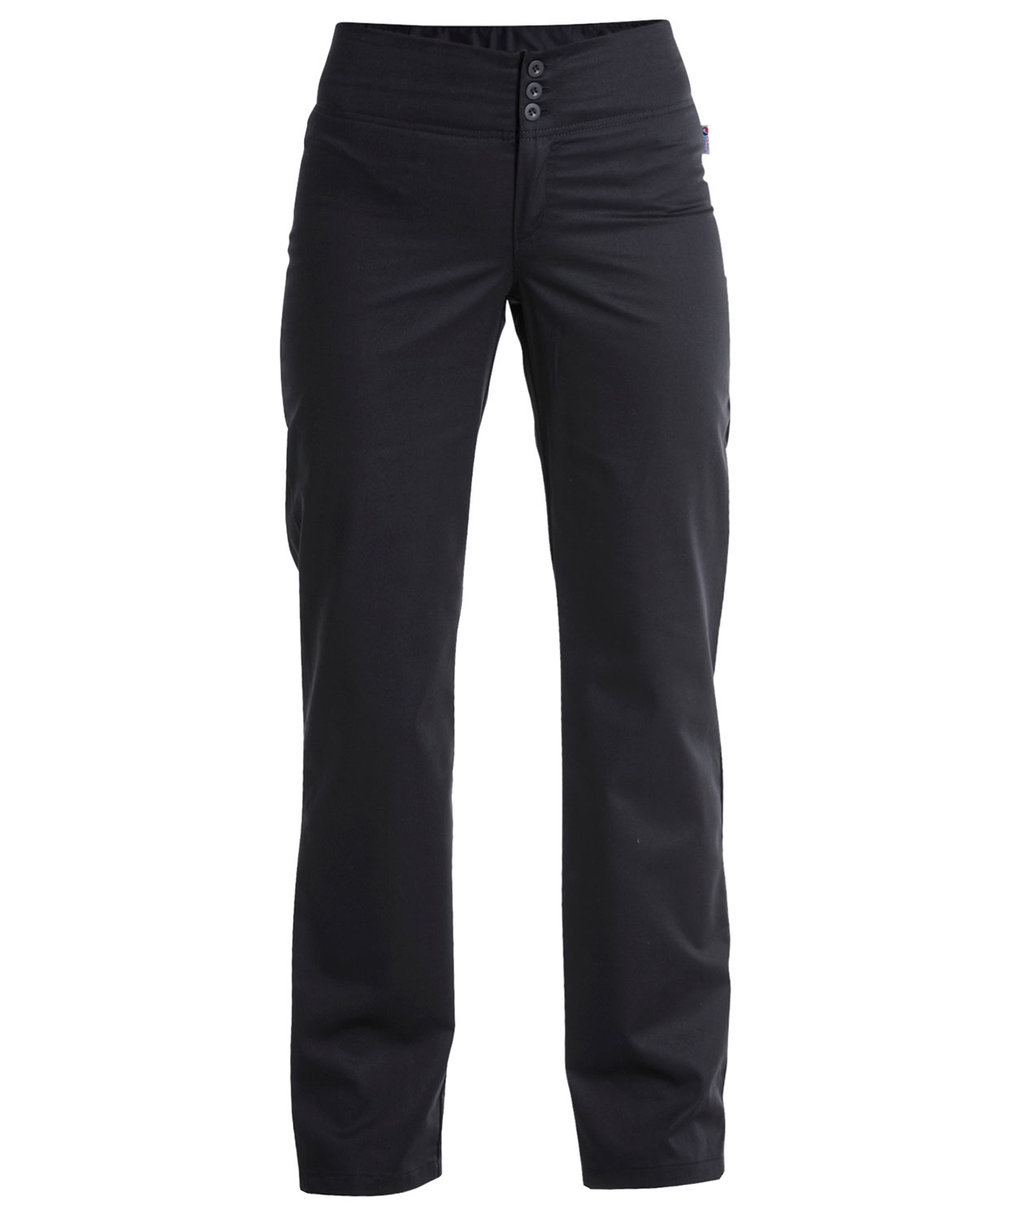 Hejco women's trousers with stretch, Black